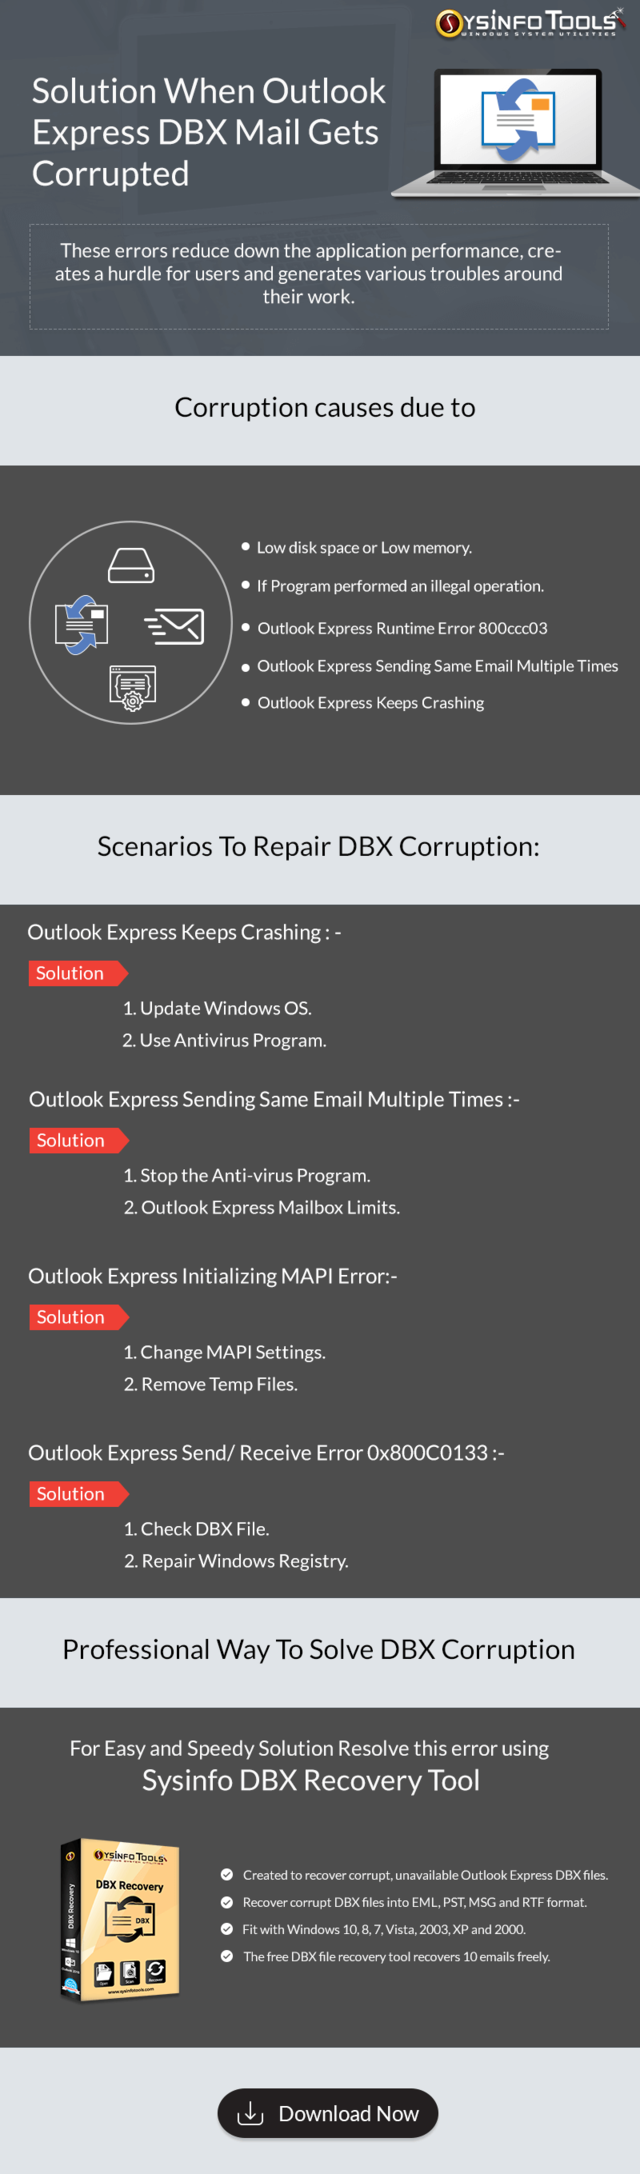 Solution when outlook express dbx mail gets corrupted 1